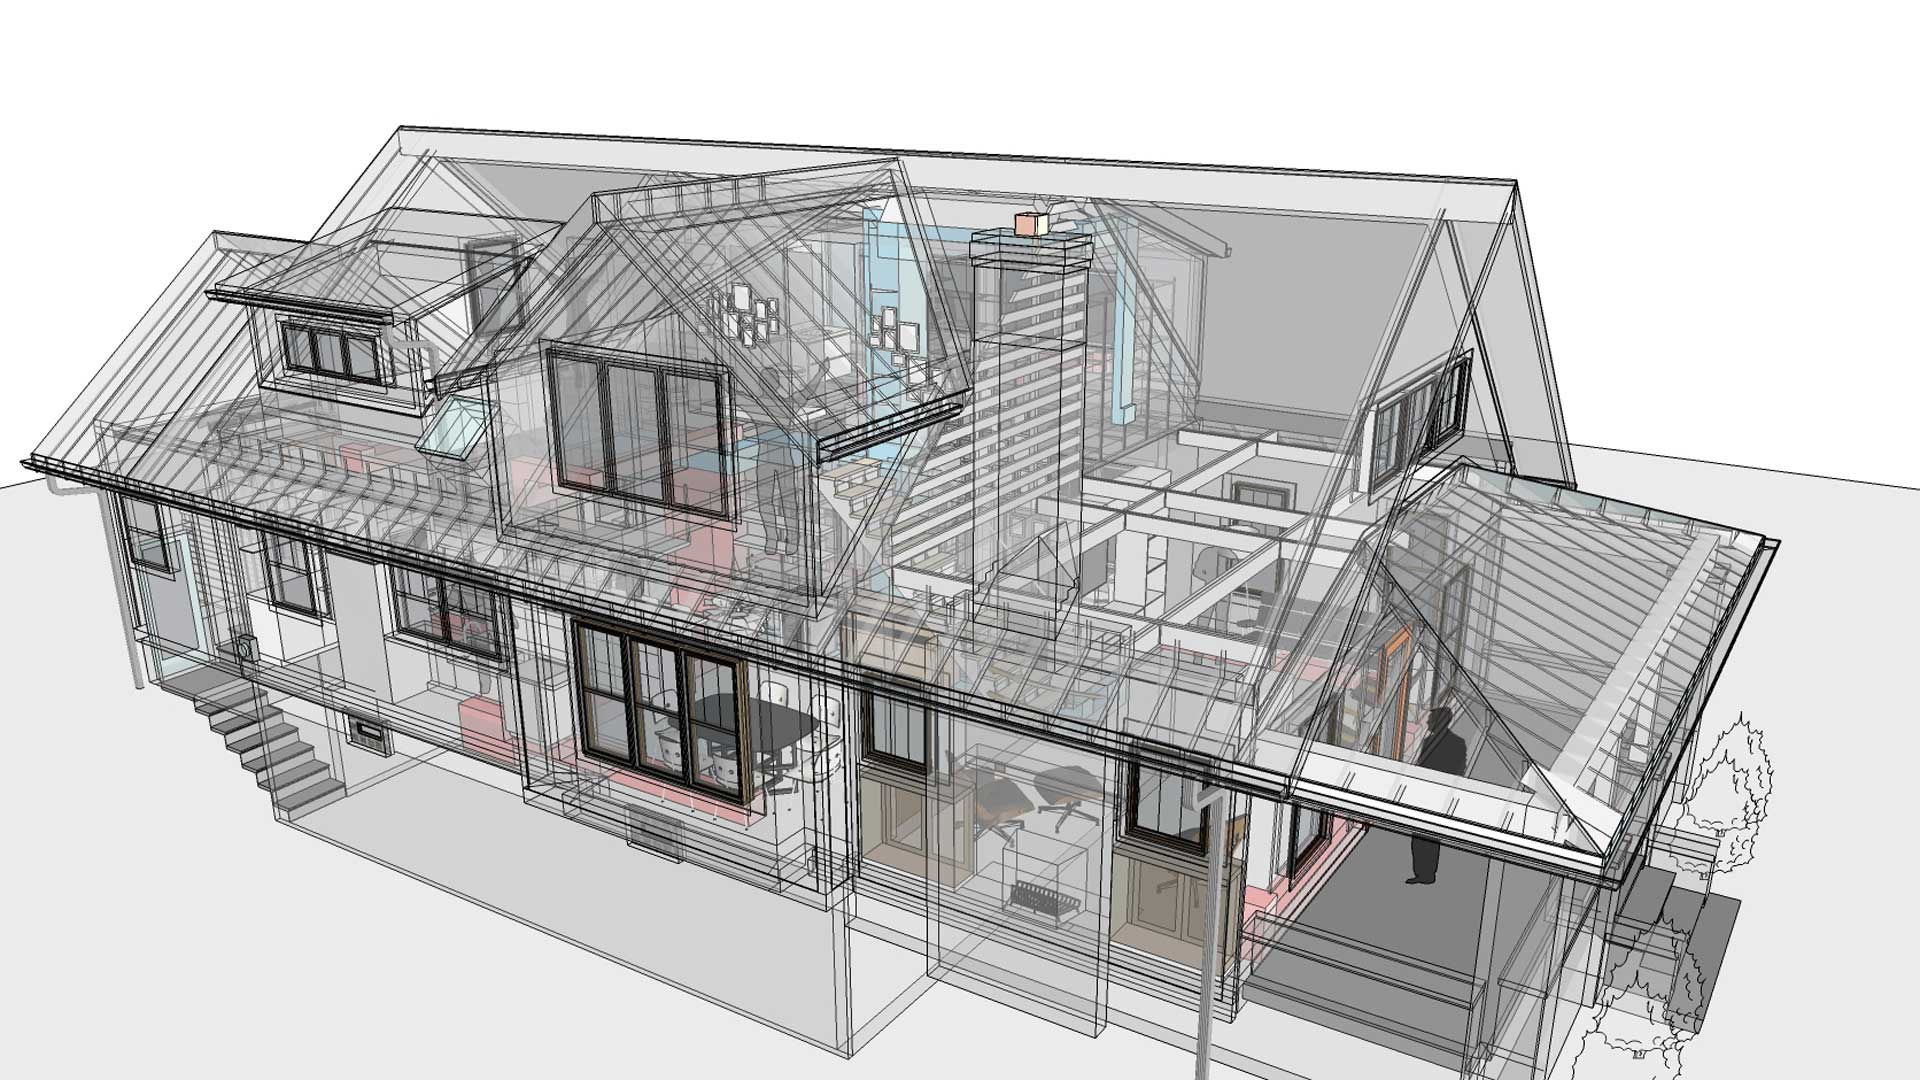 Broad Ripple Craftsman Renovation – See through diagram of the systems - Modern Craftsman Renovation - Indianapolis, IN